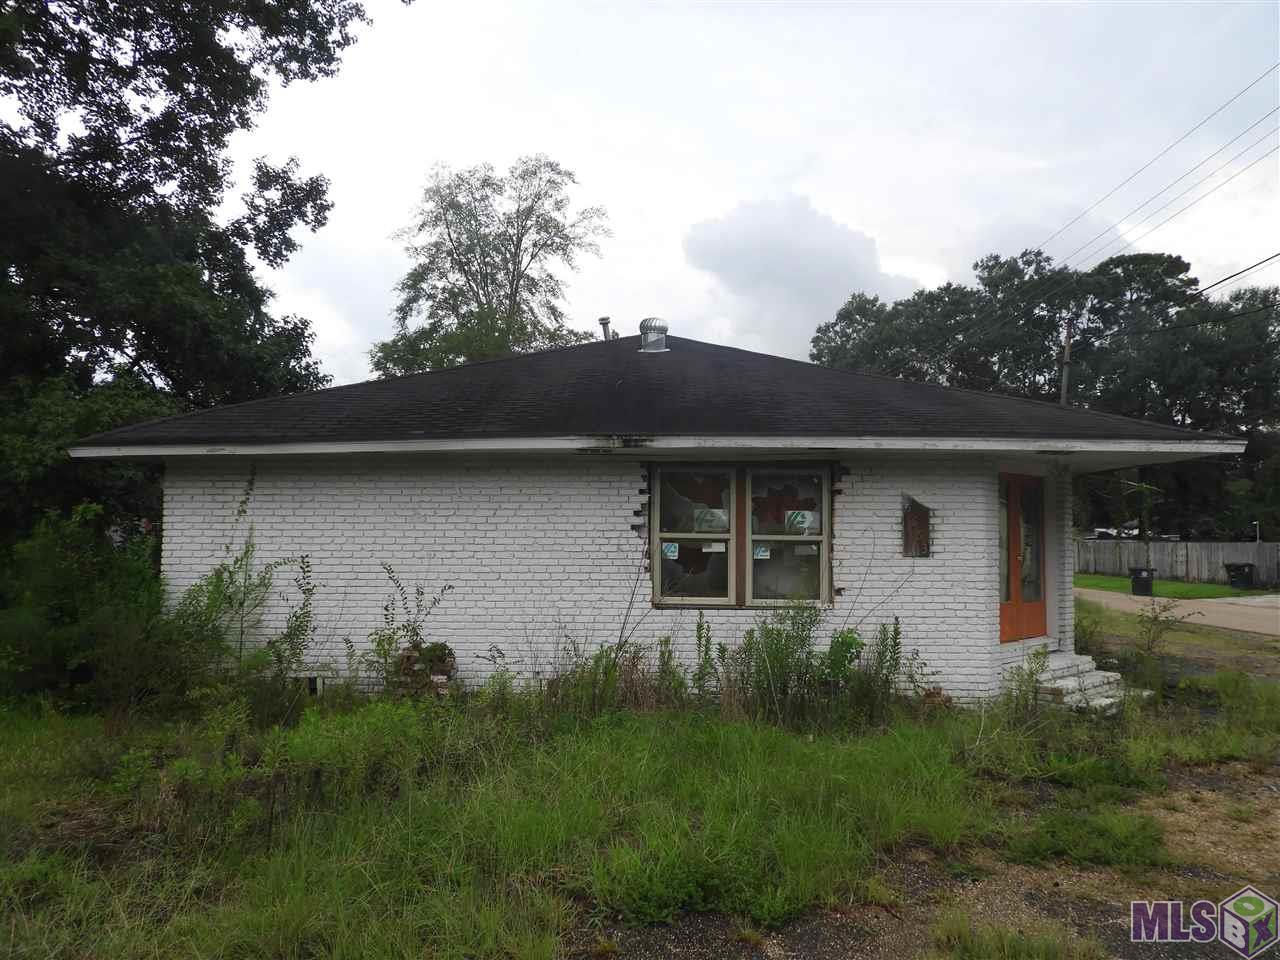 HAVE IT YOUR WAY!! This one need to be completed. Restoration started but not complete. Spacious three bedroom two bath, large family room. Corner lot larger than most in the area. Completely fenced. Double garage and carport. Can be used for parking on parting with the family.